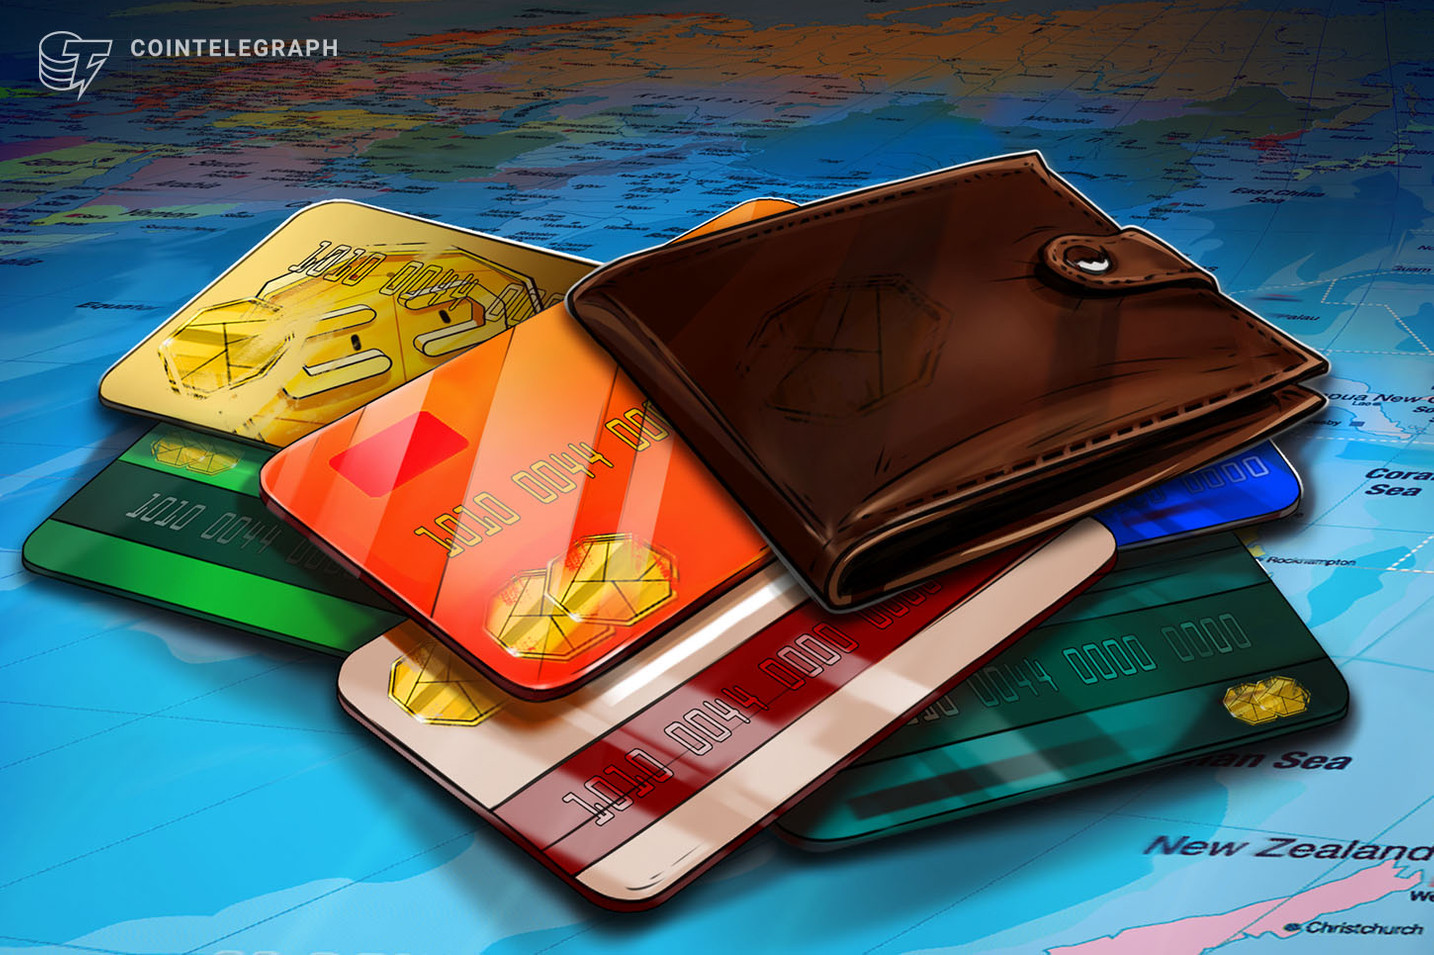 Got crypto? Here are 3 debit cards that let you spend your stack